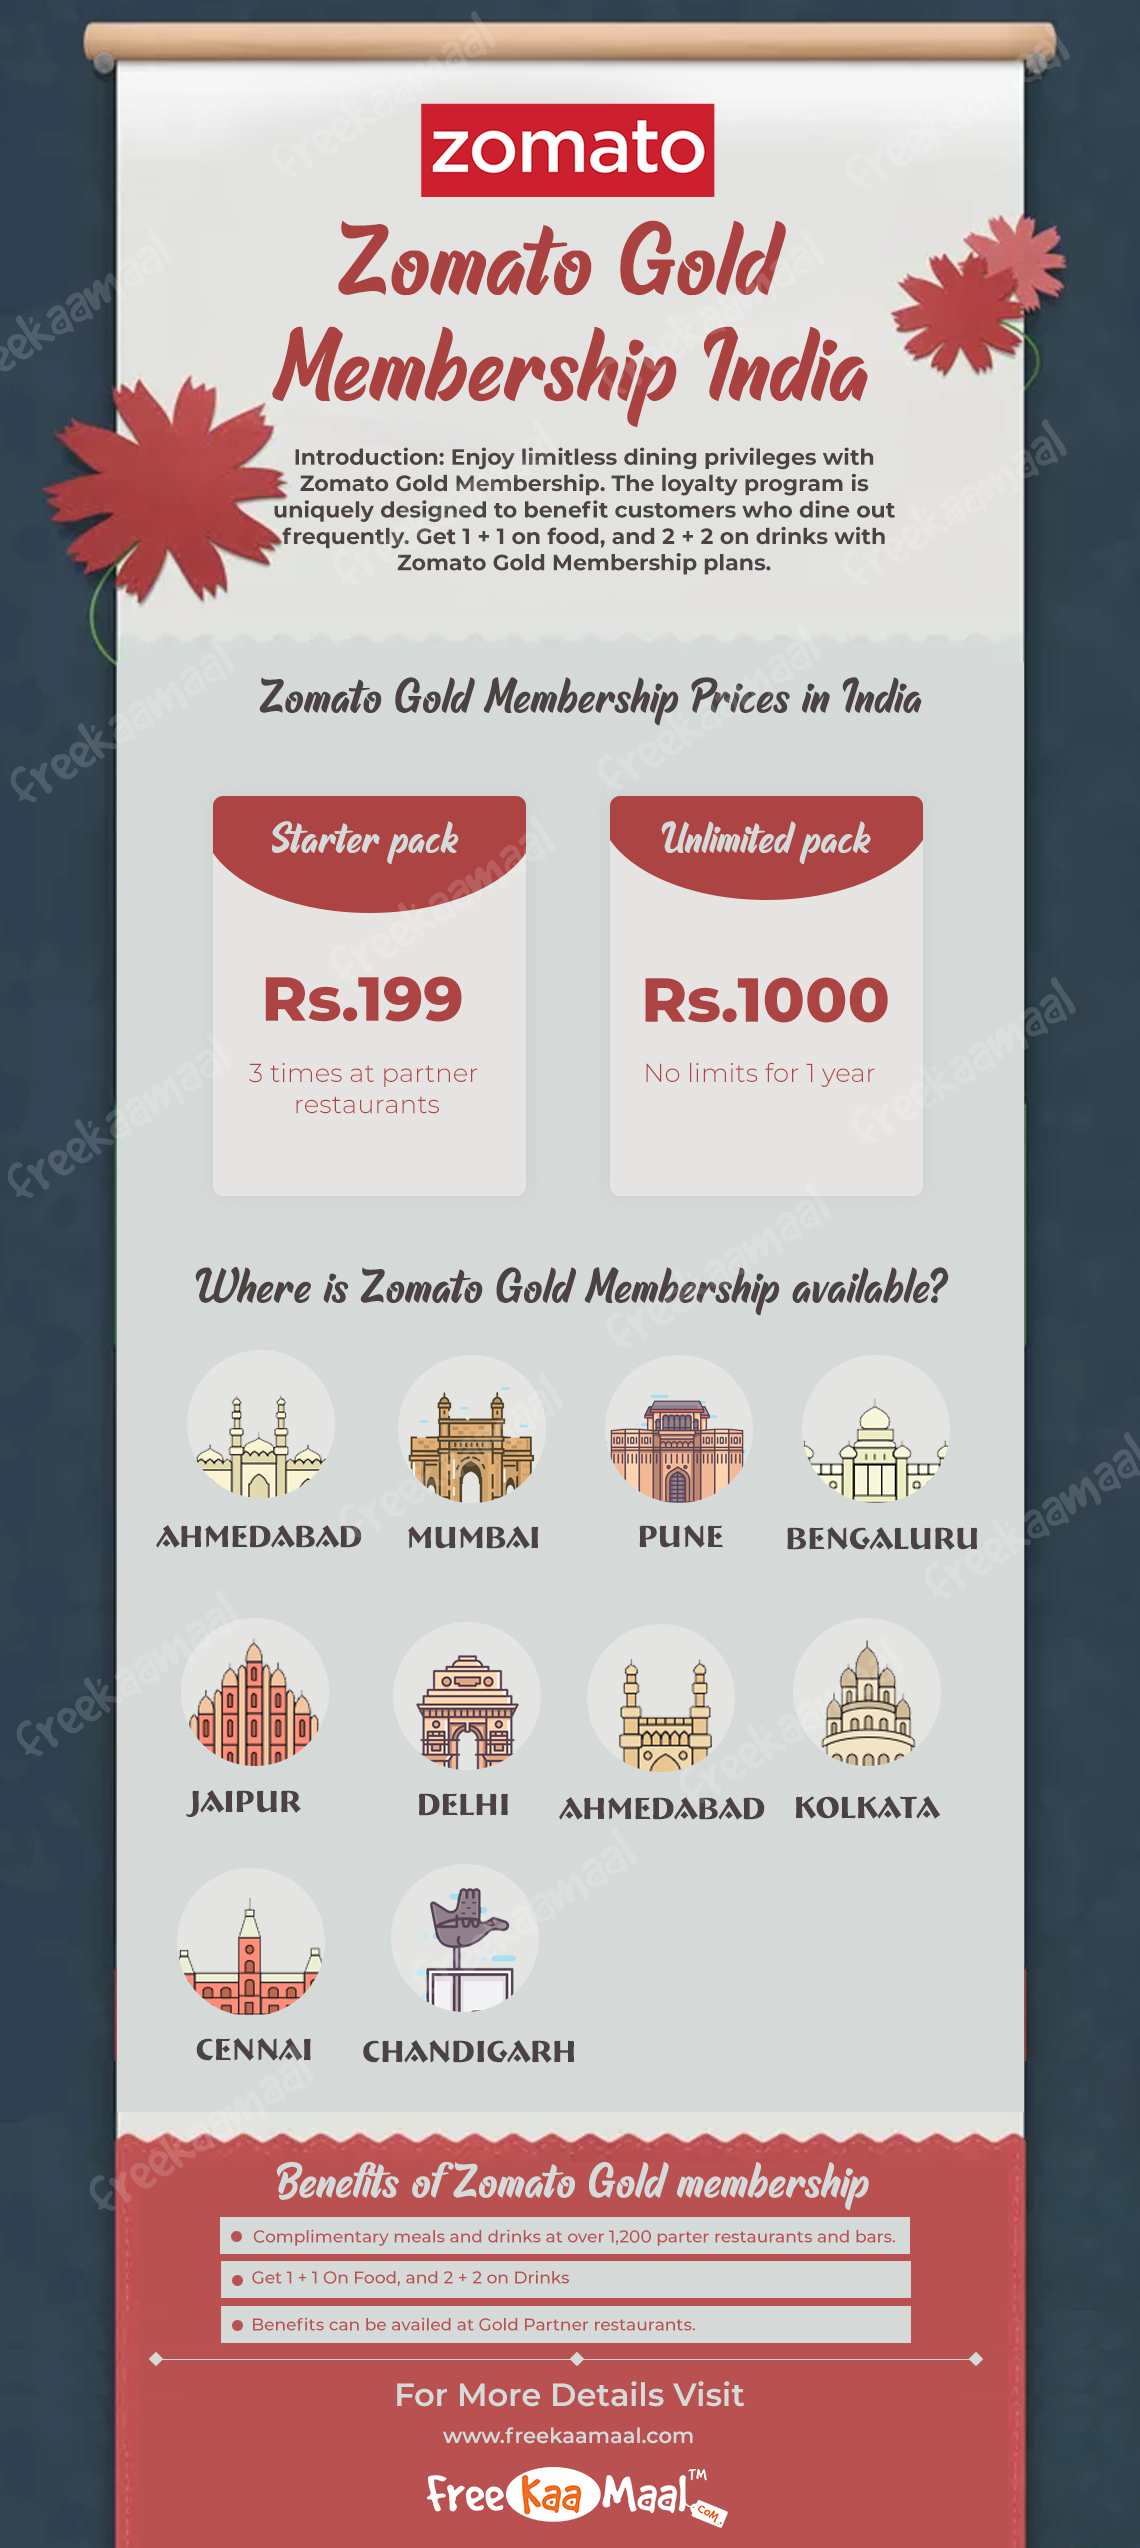 Zomato Gold Membership India: Prices, Benefits and Exclusive Promo Codes